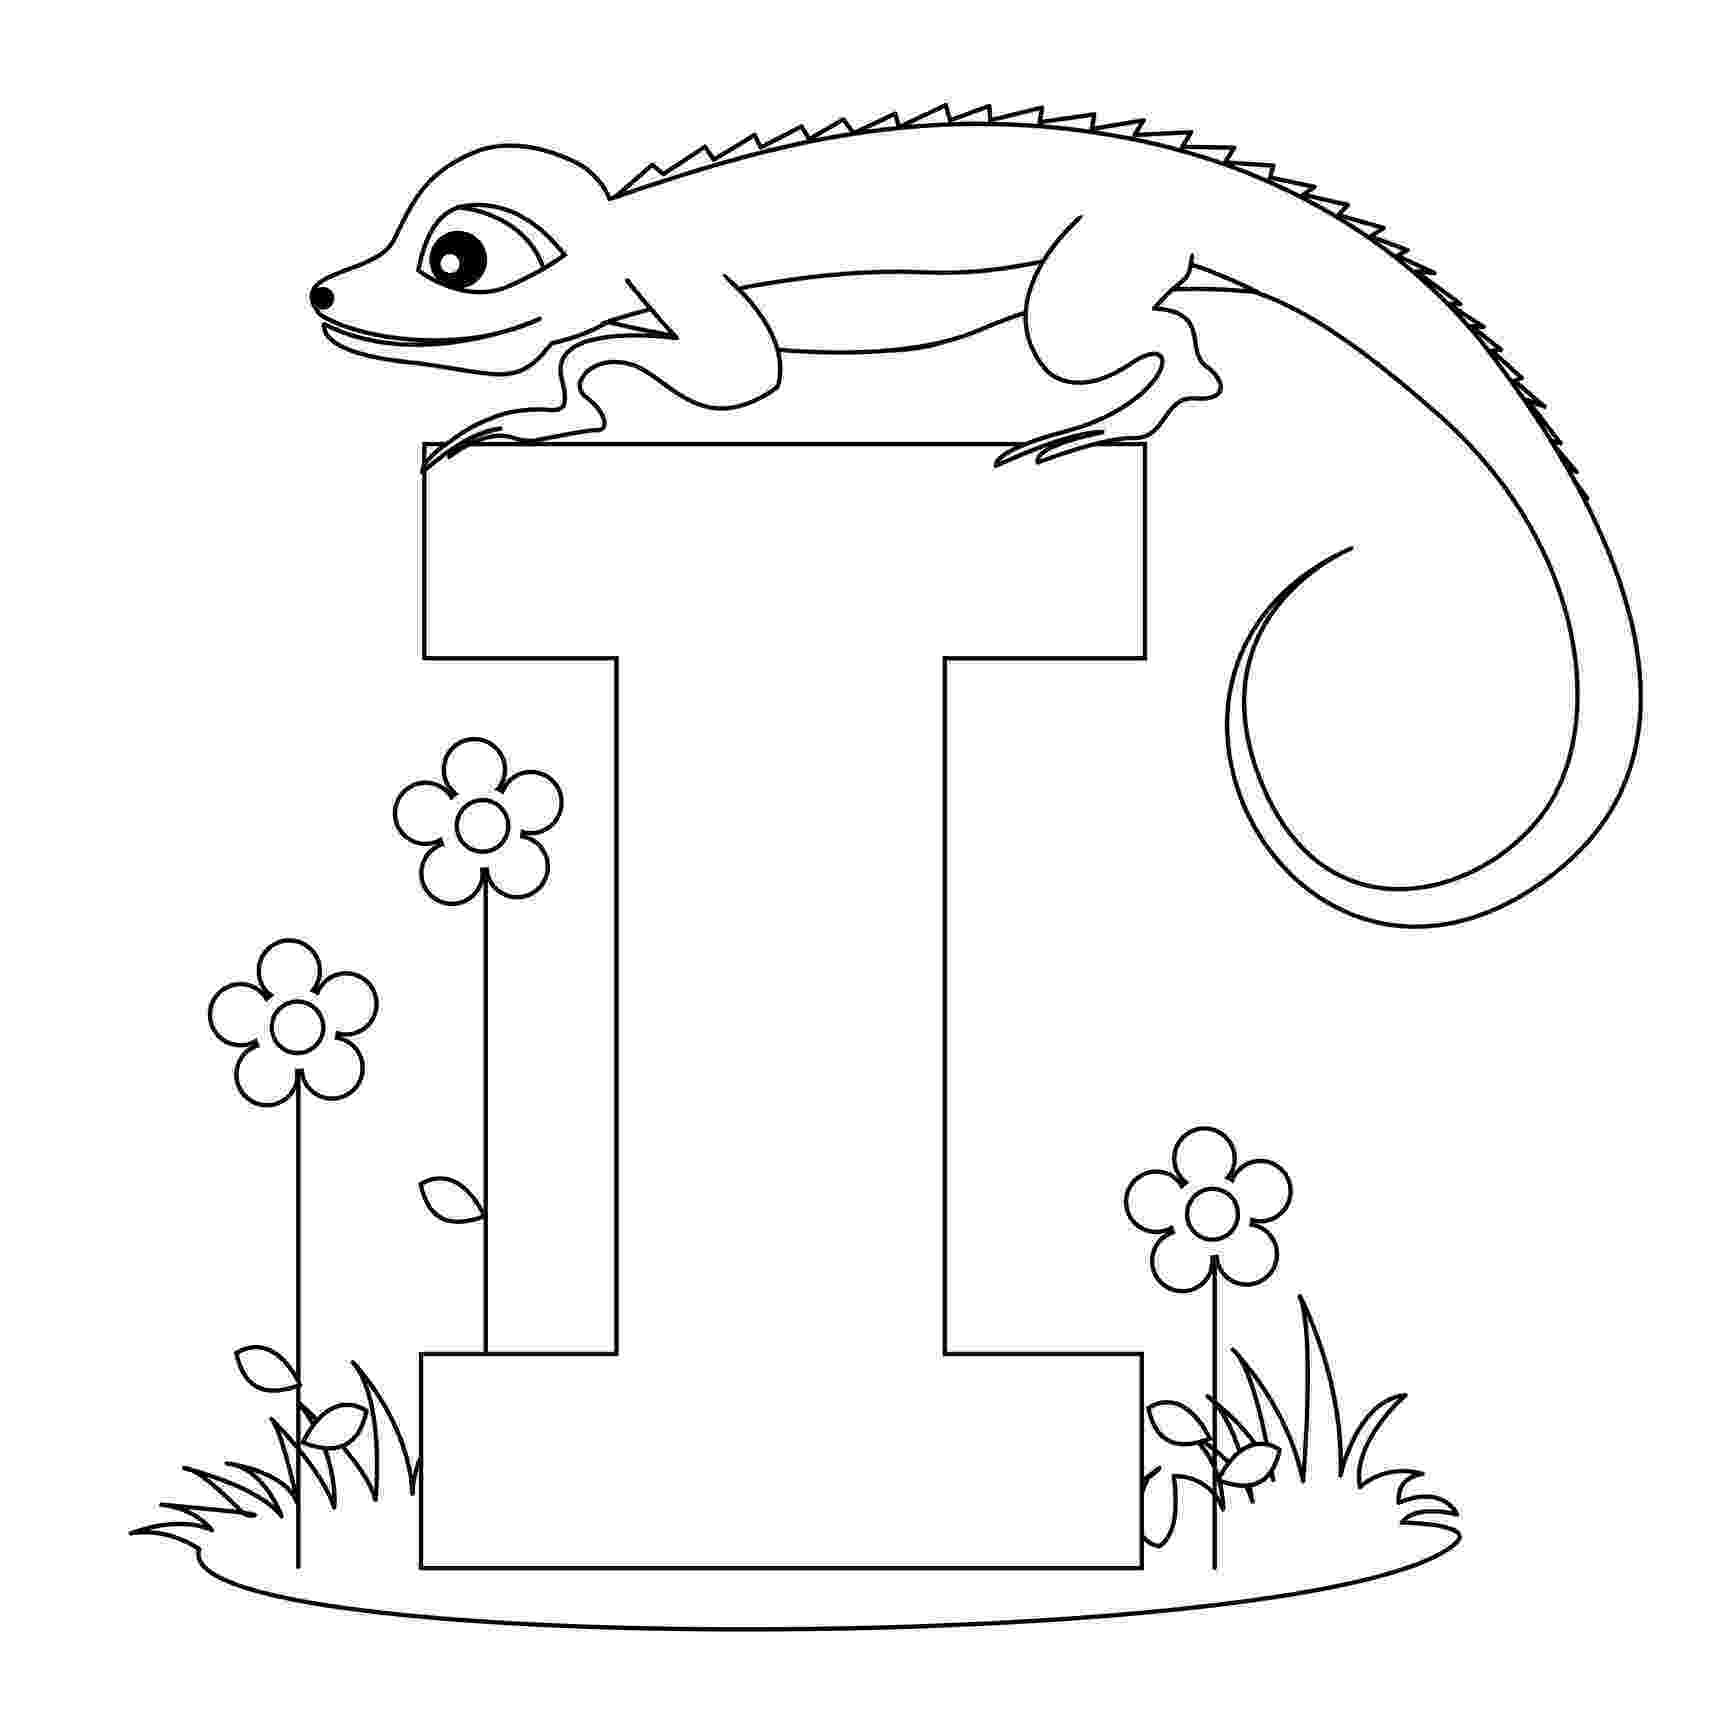 alphabet coloring free printable alphabet coloring pages for kids best coloring alphabet 1 5